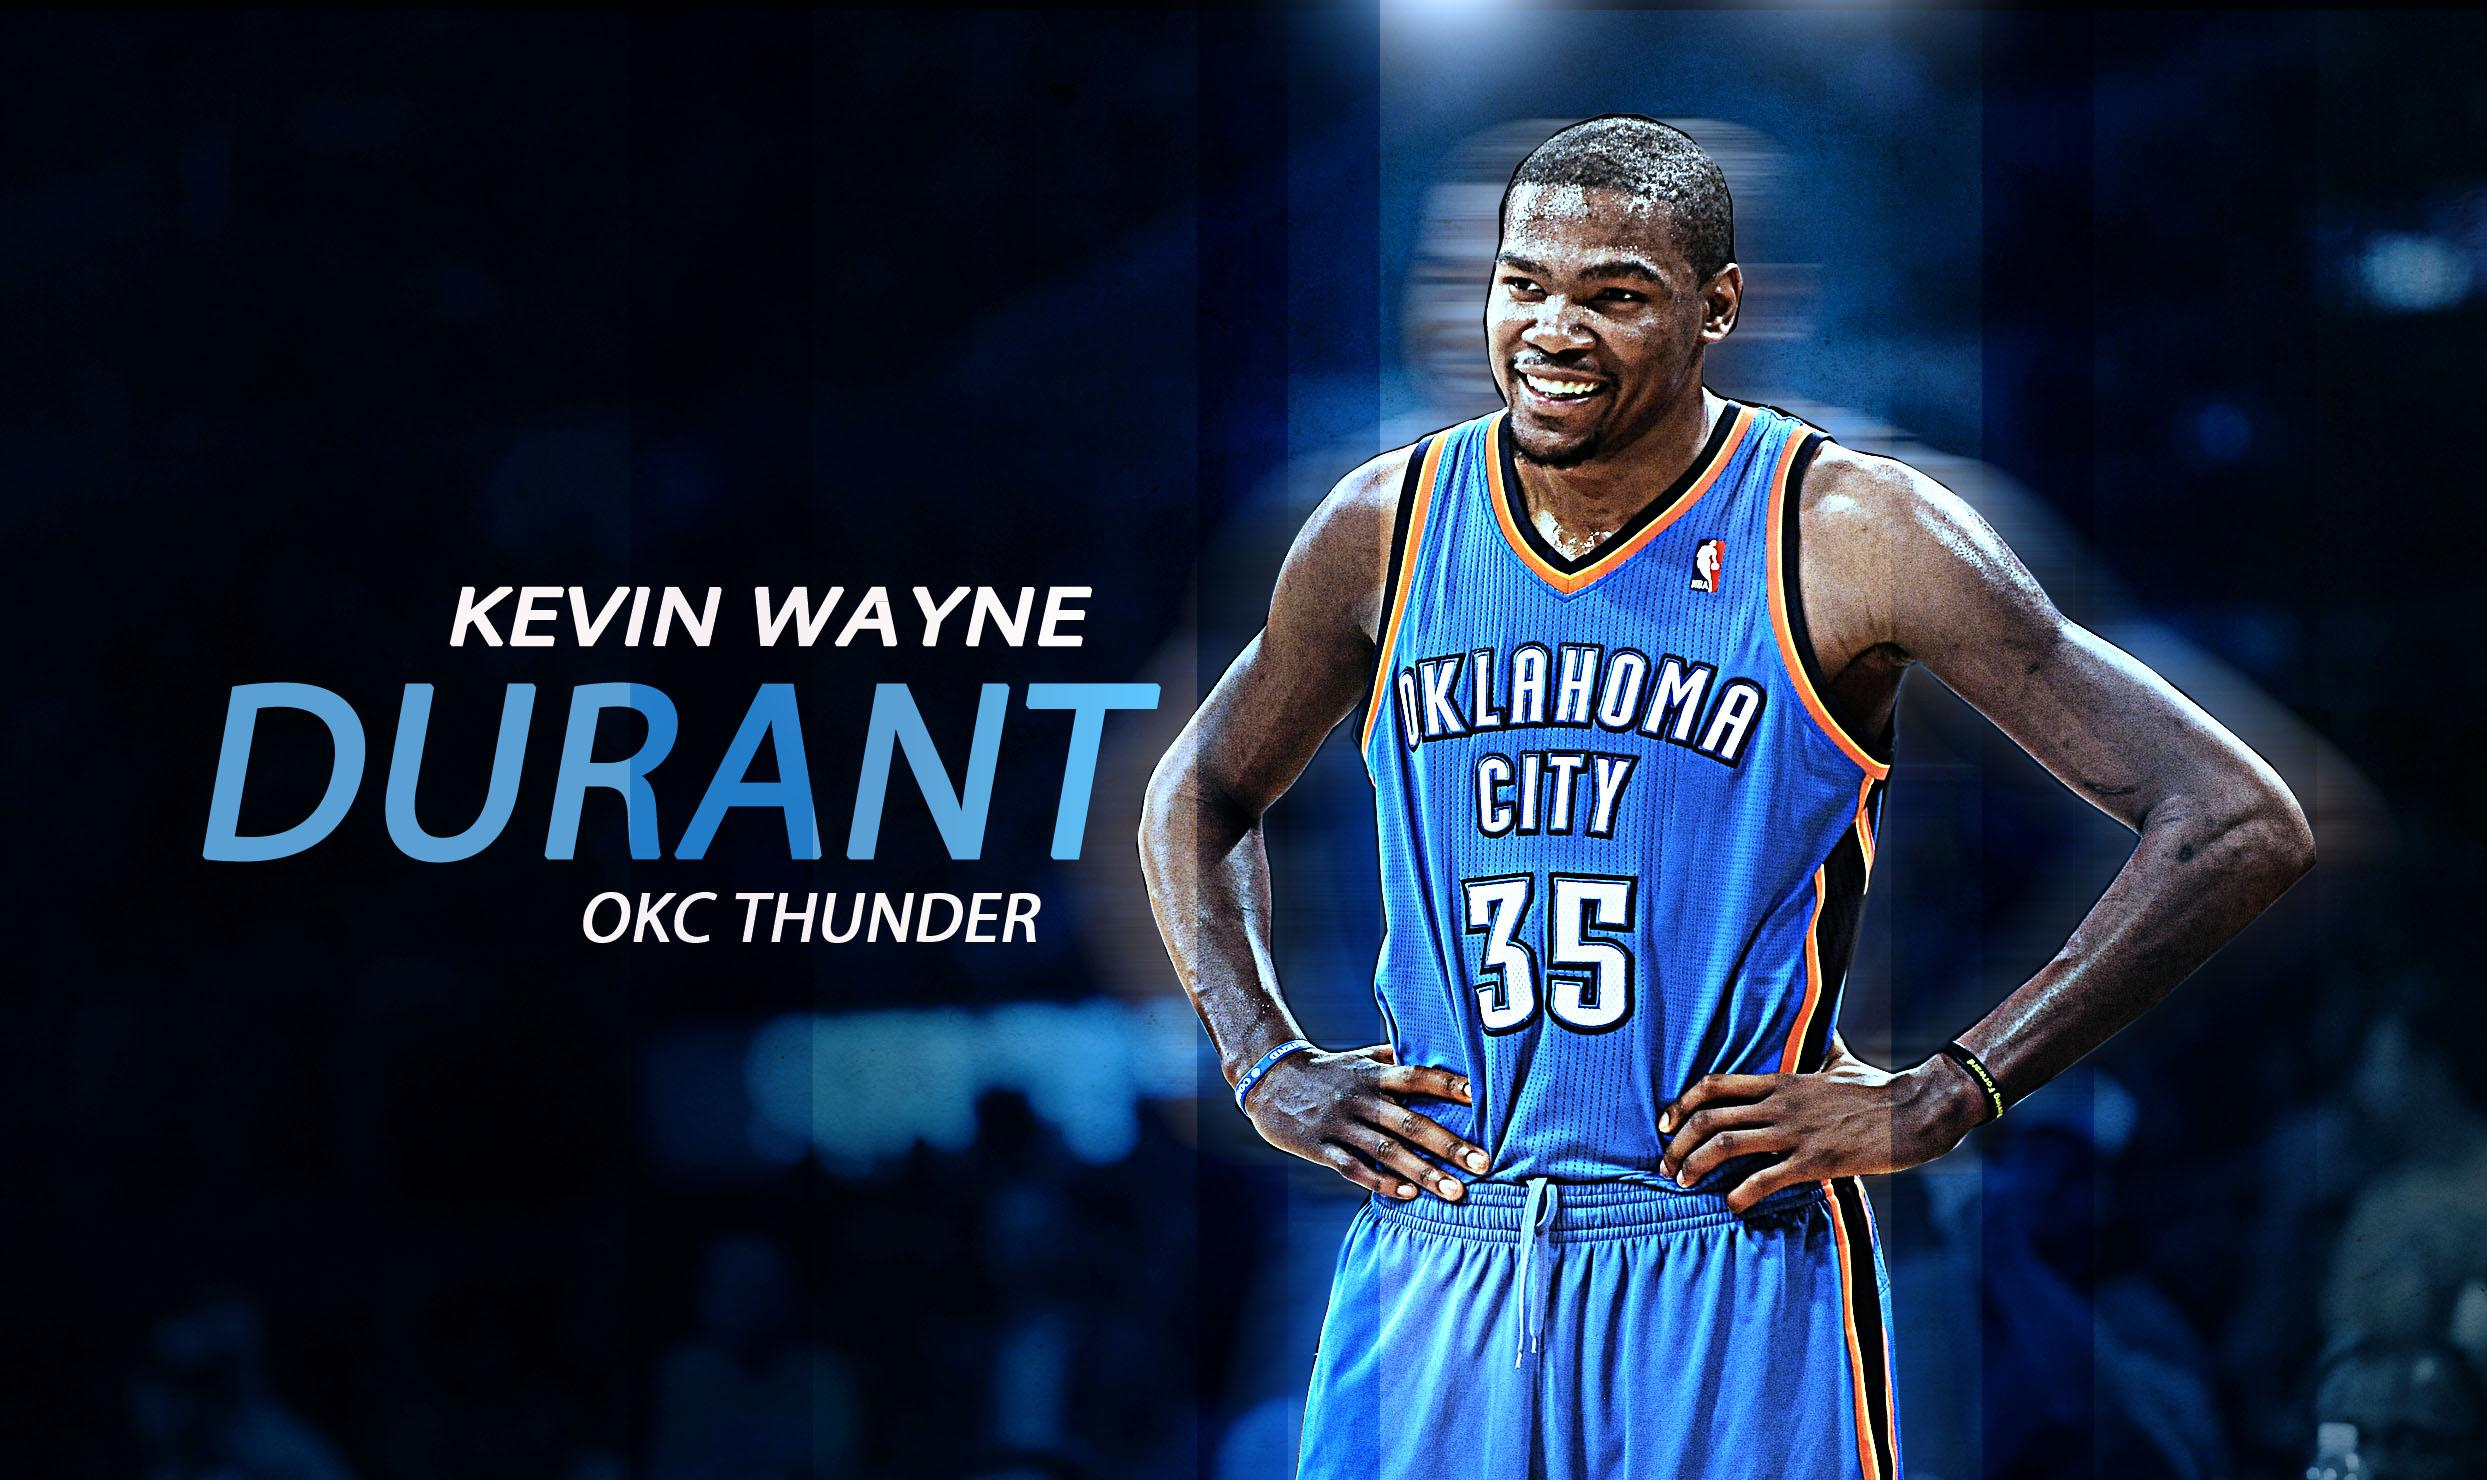 Kevin Durant Wallpapers 2015 HD 2487x1480